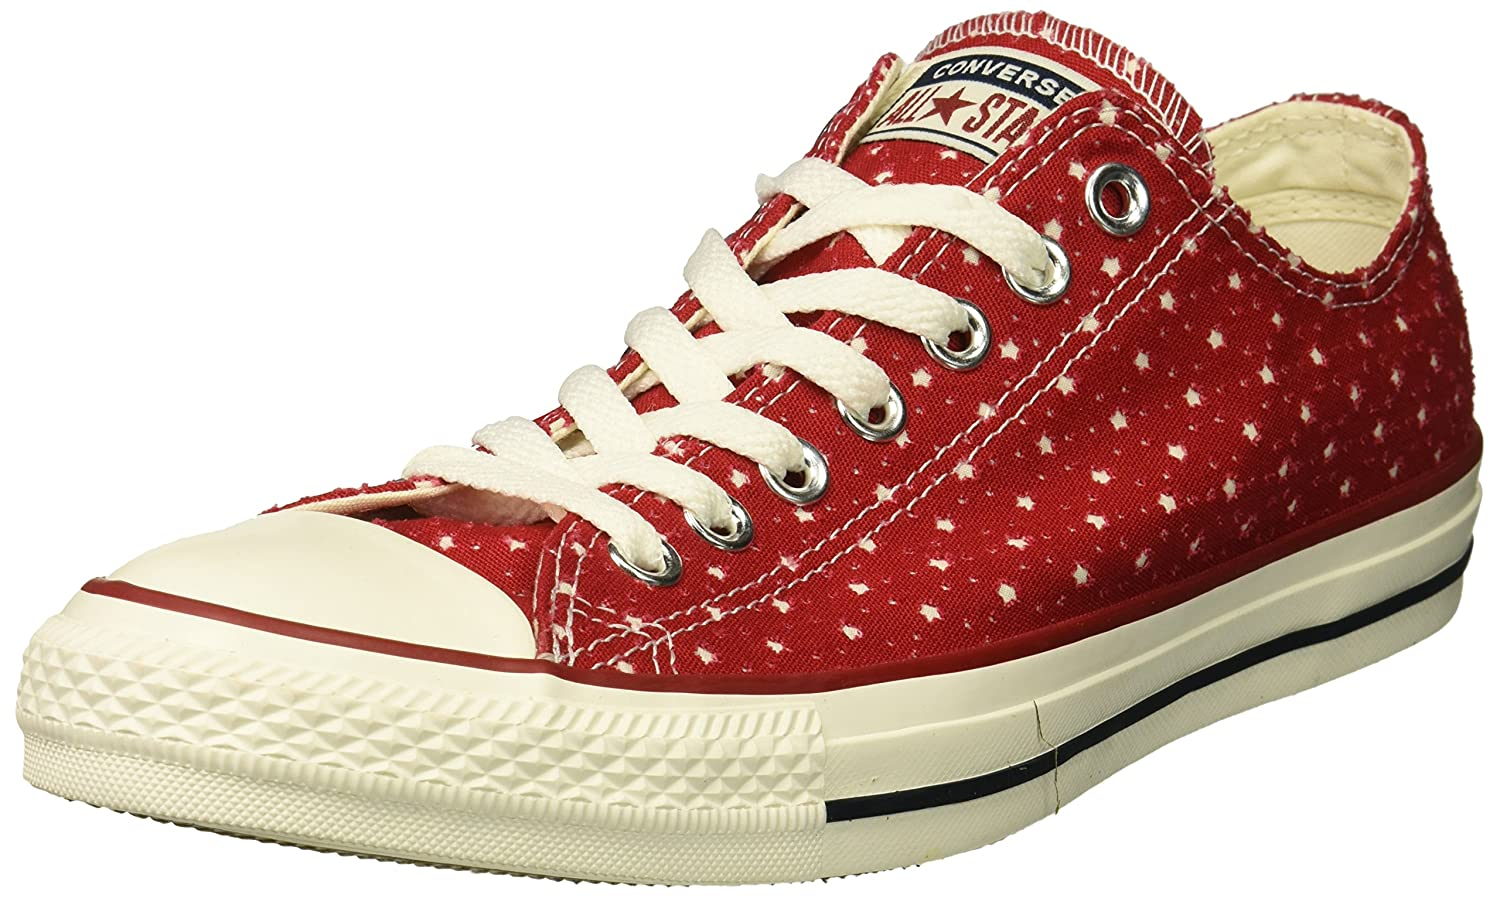 Converse Unisex Chuck Taylor Perforated Stars Faible Top paniers, gym gym rouge garnet athletic navy, 5 M US Hommes's Taille   7 M US Wohommes Taille  prix de gros